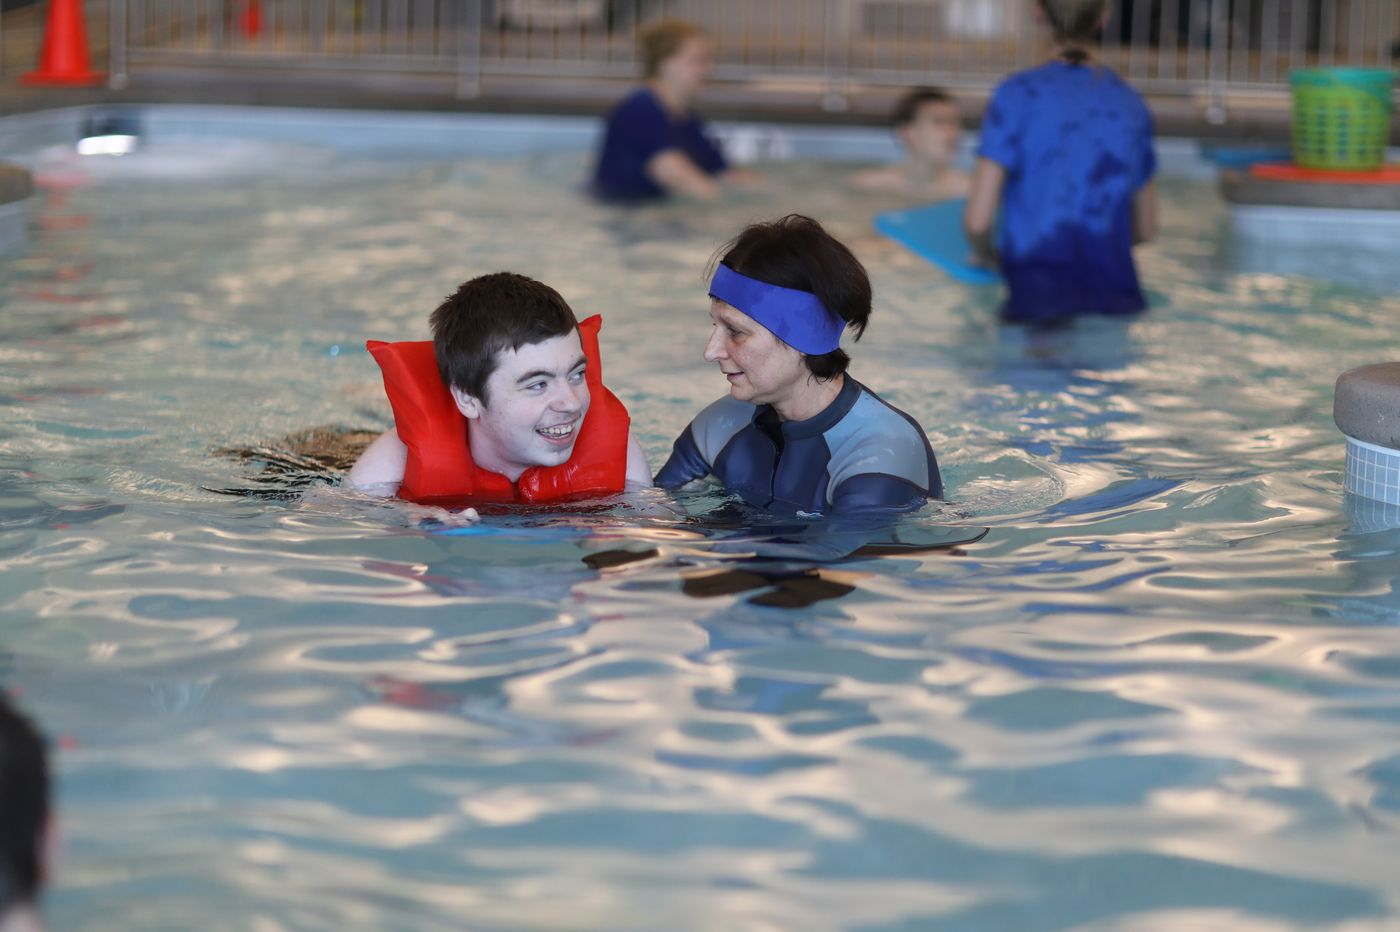 Autism puts kids at higher risk for drowning. One N.J. school has found a solution.